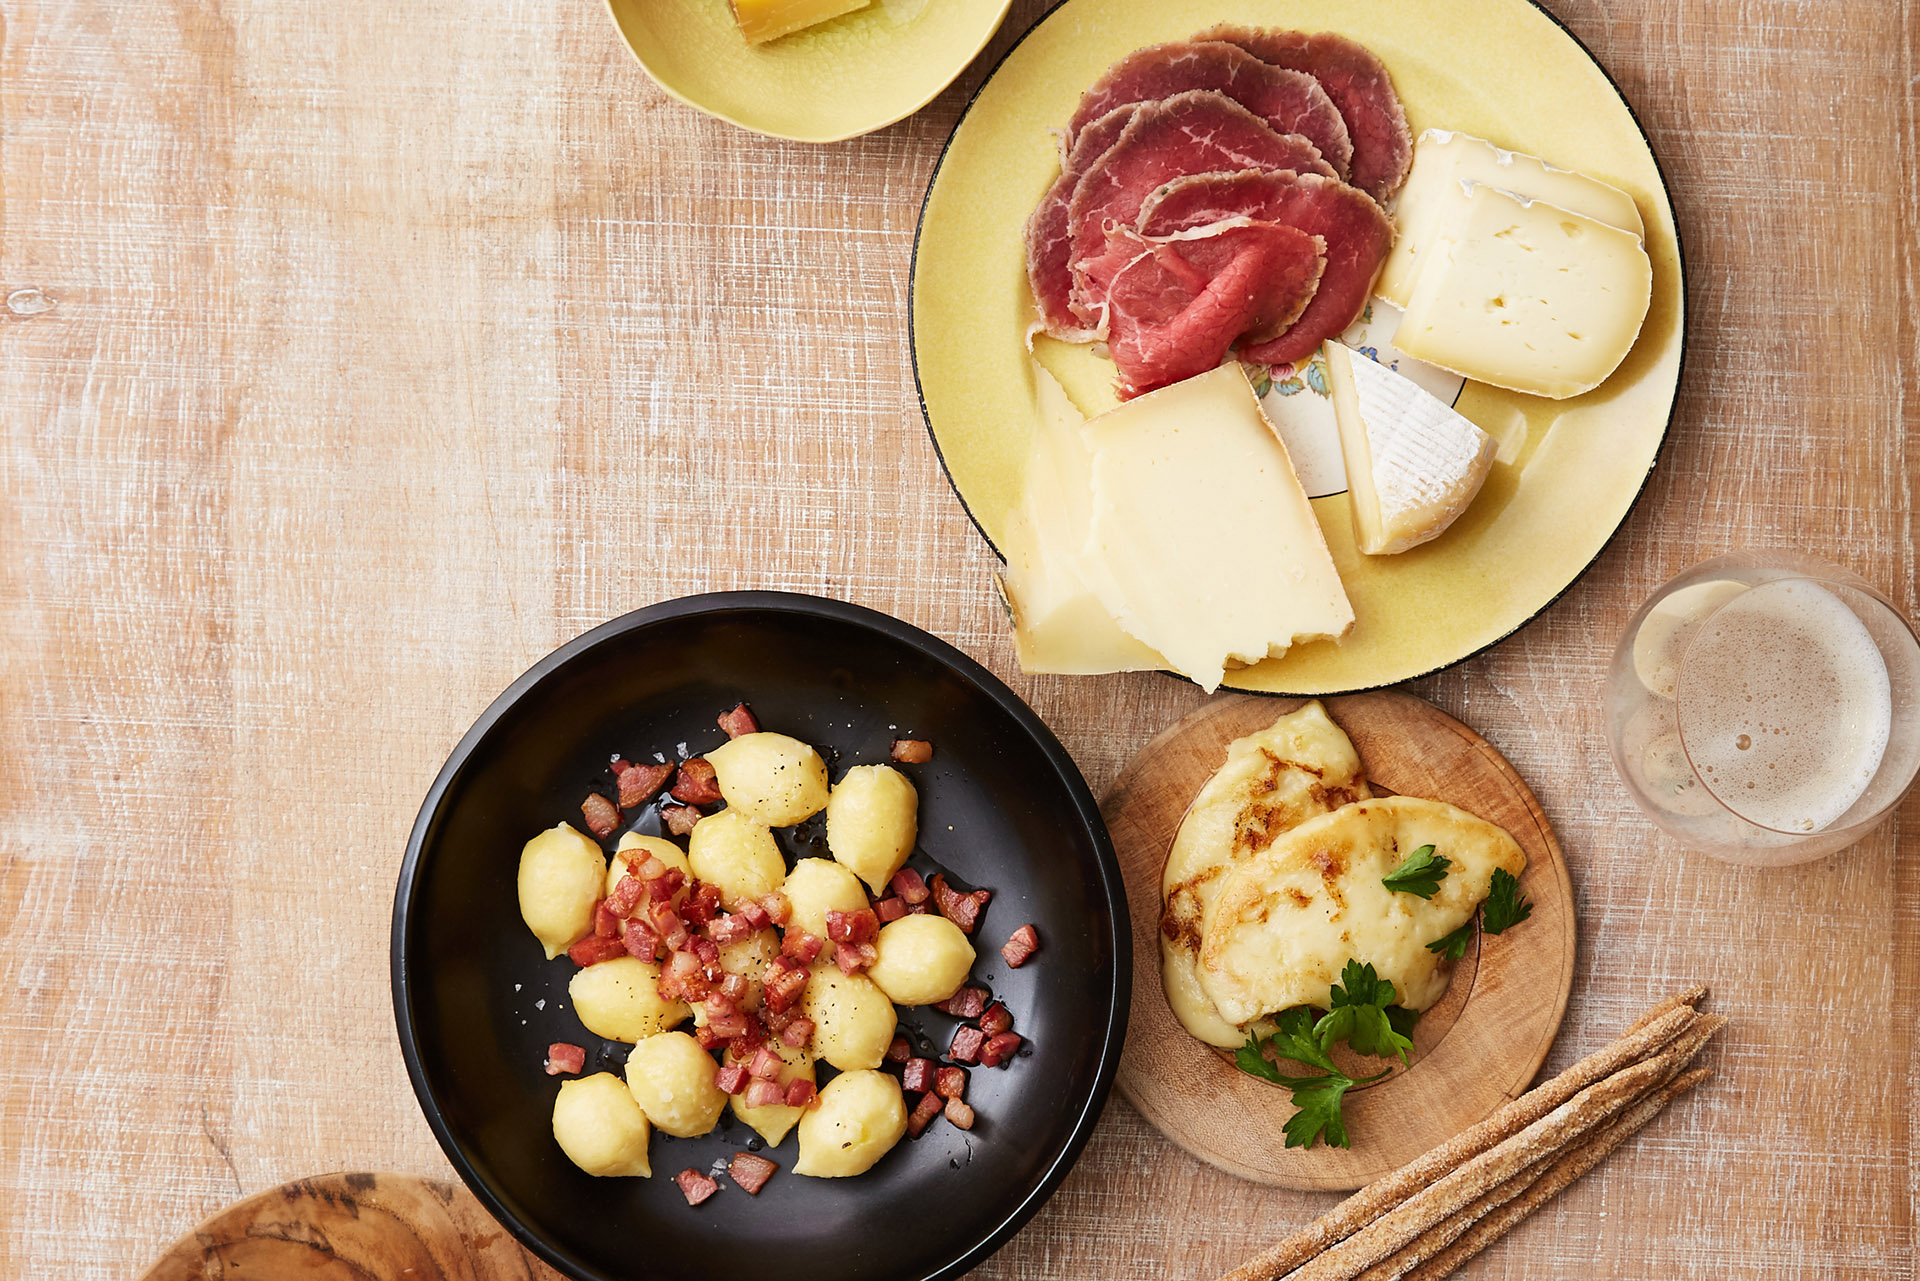 Gnocchi, Cheese And Other Dishes To Pair With Northern Italian Bubbles photo